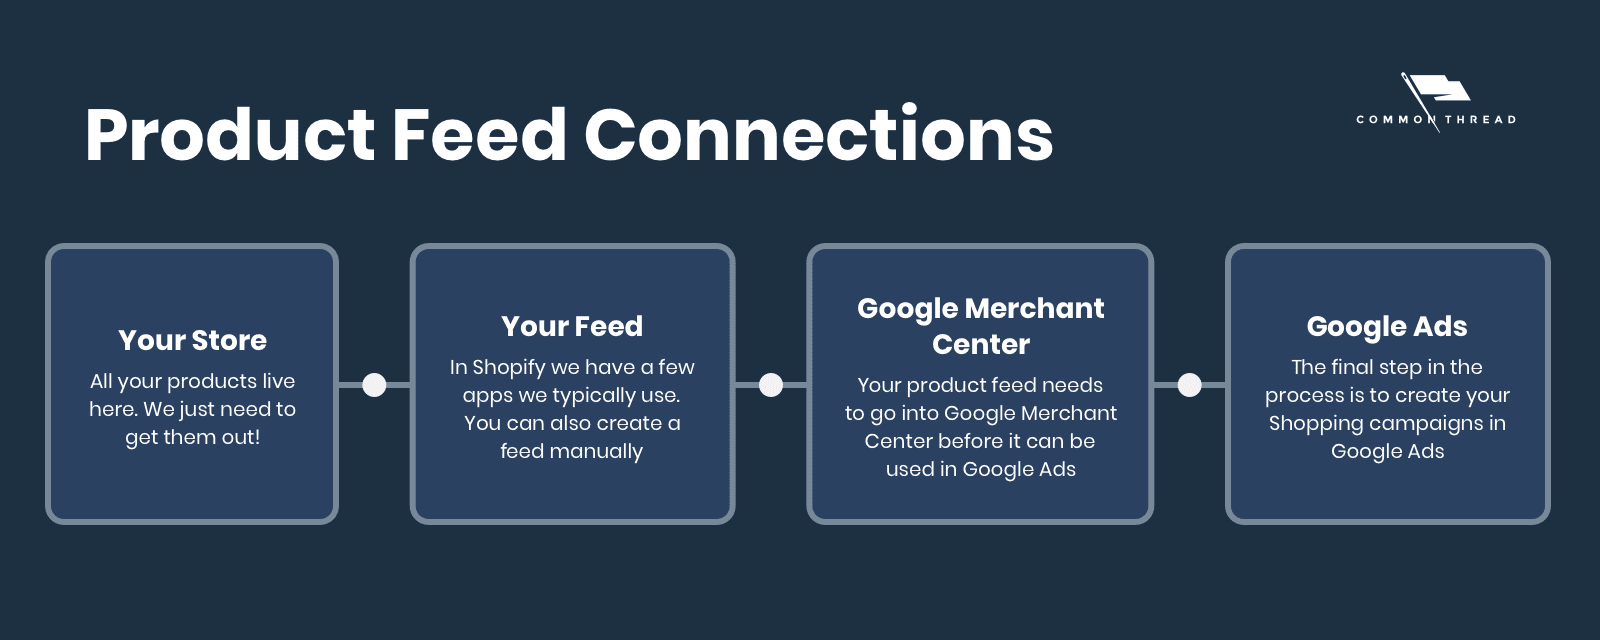 Google Product Feed Connections